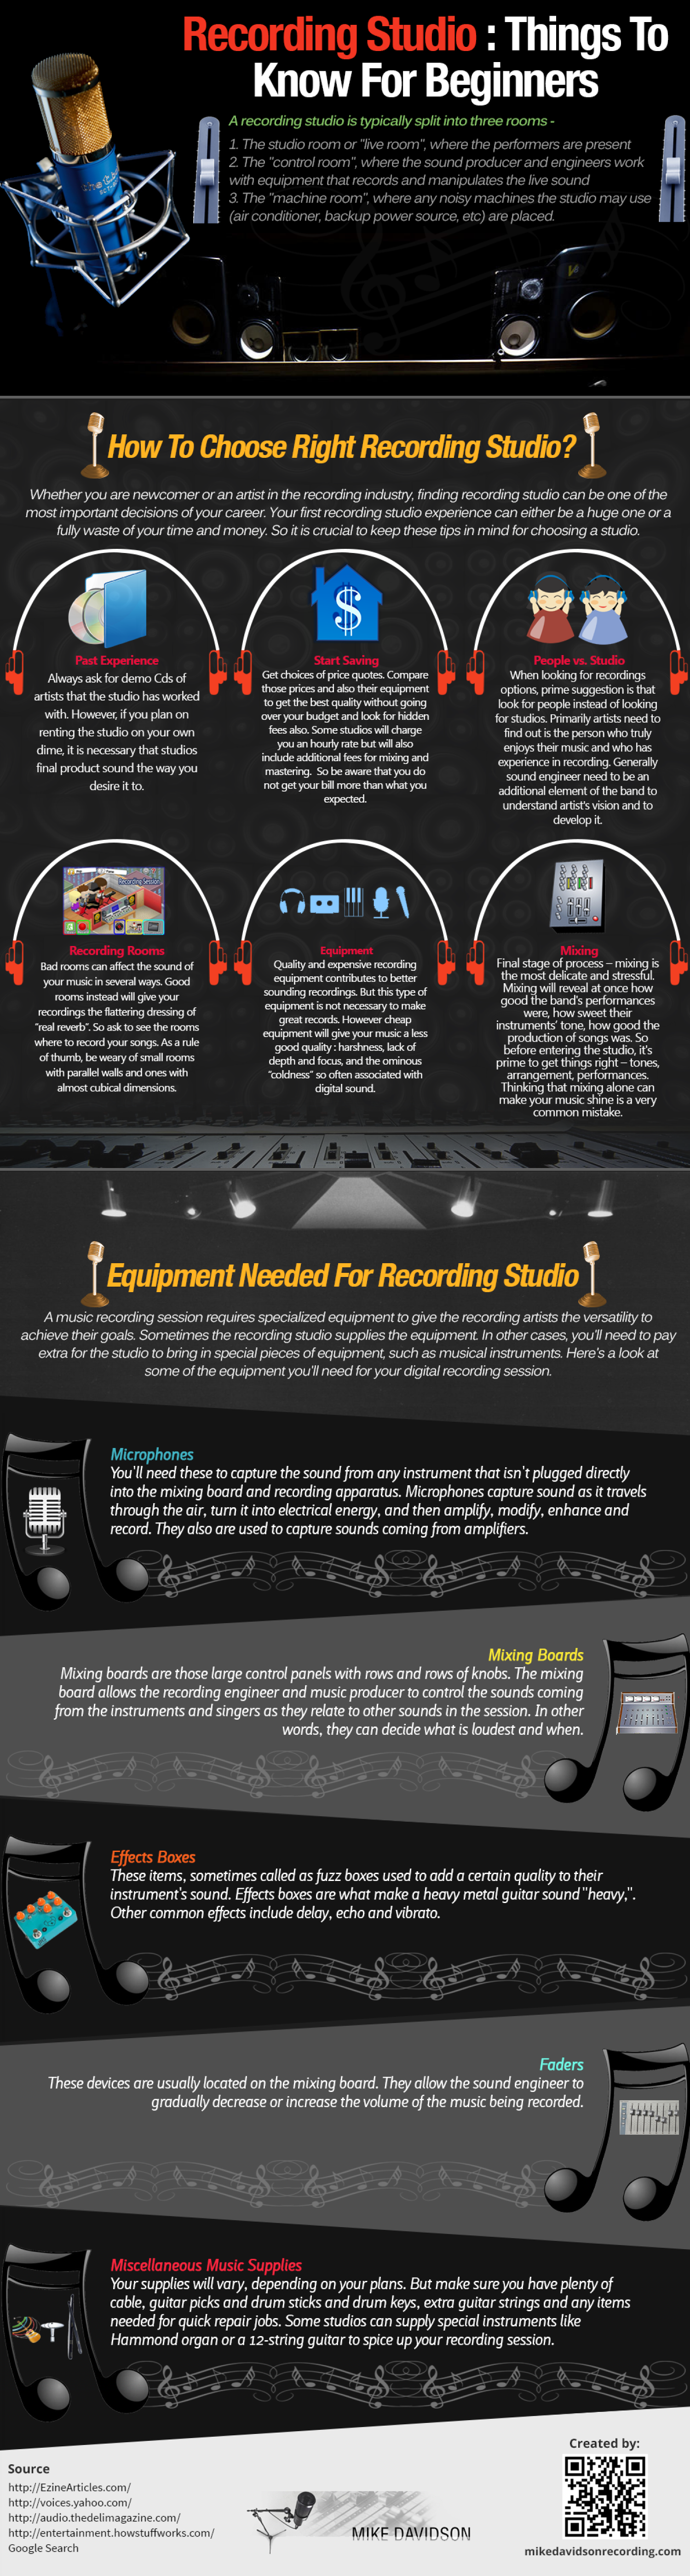 Recording Studio : Things To Know For Beginners Infographic